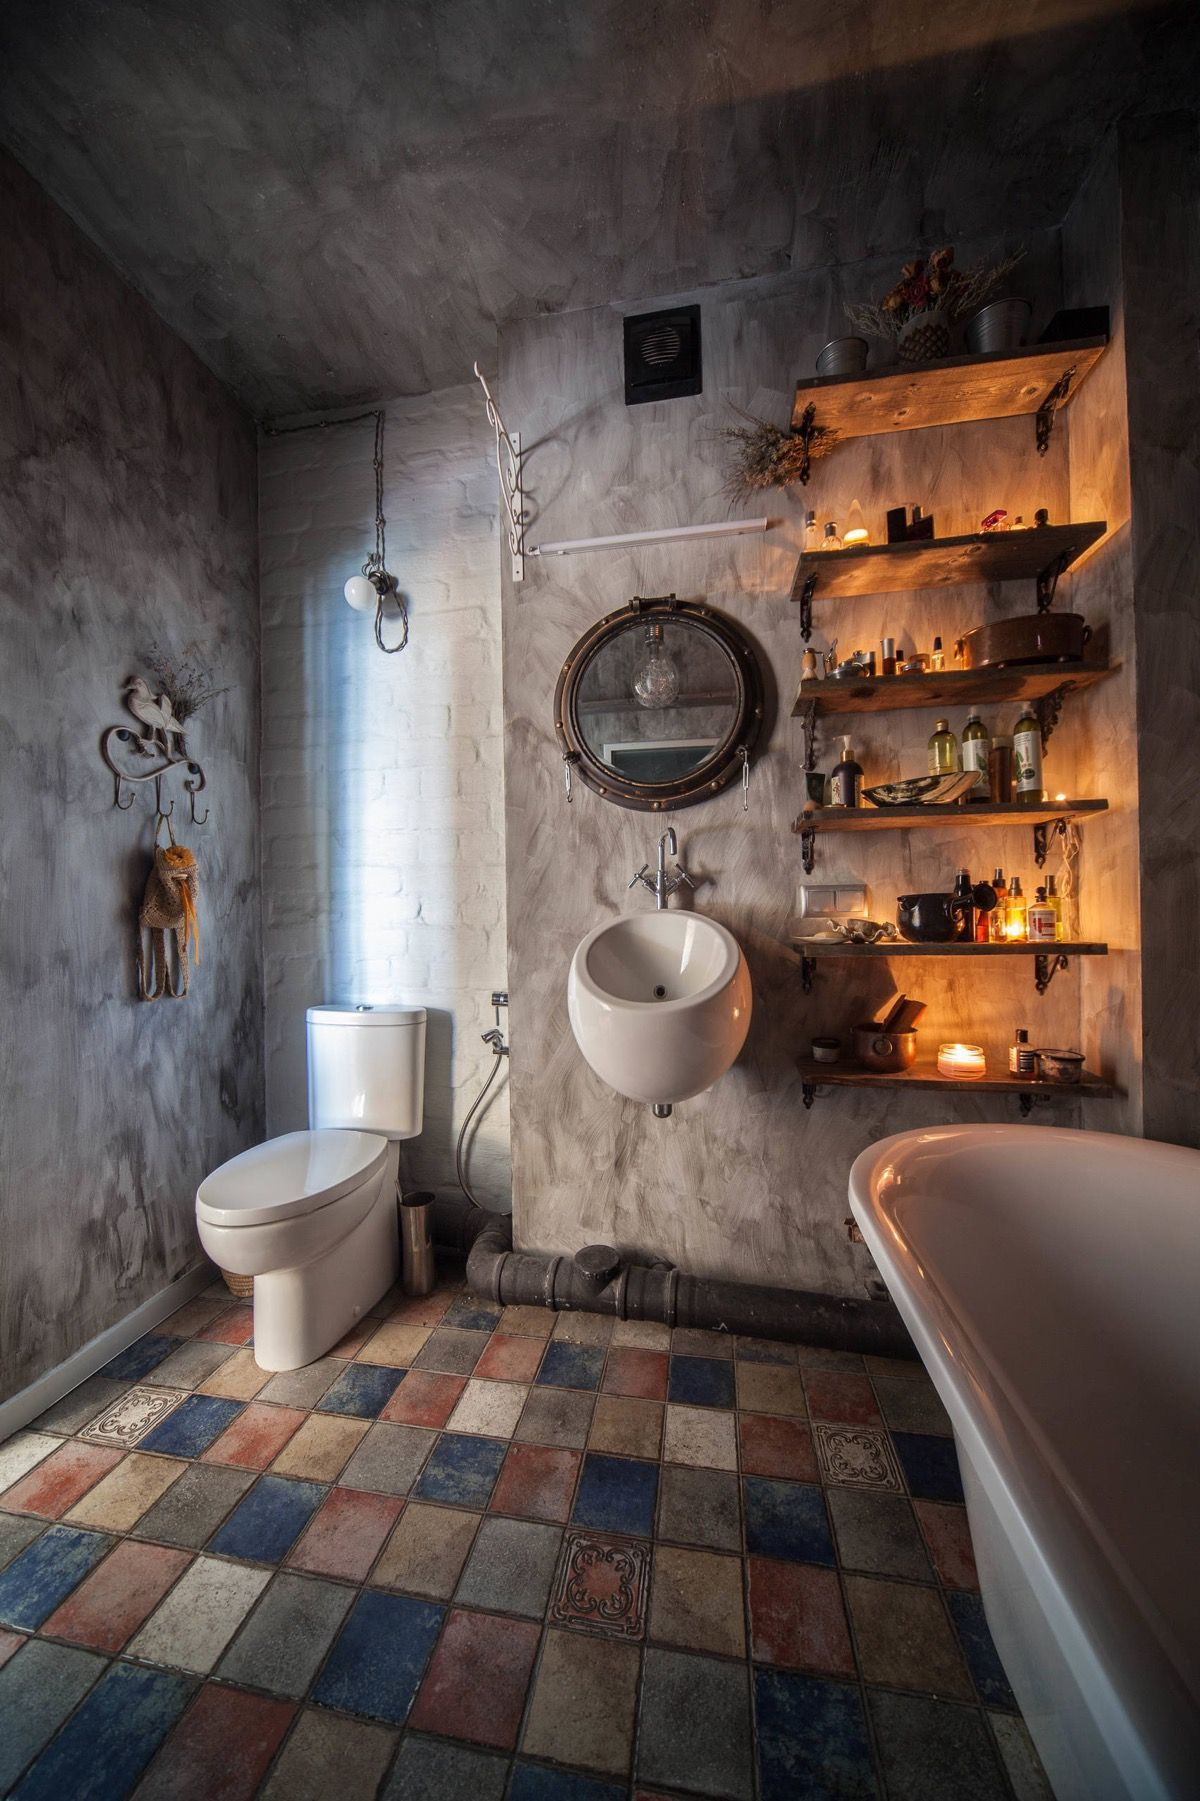 51 Industrial Style Bathrooms Plus Ideas Accessories You Can Copy From Them With Images Industrial Style Bathroom Industrial Bathroom Design Industrial Home Design